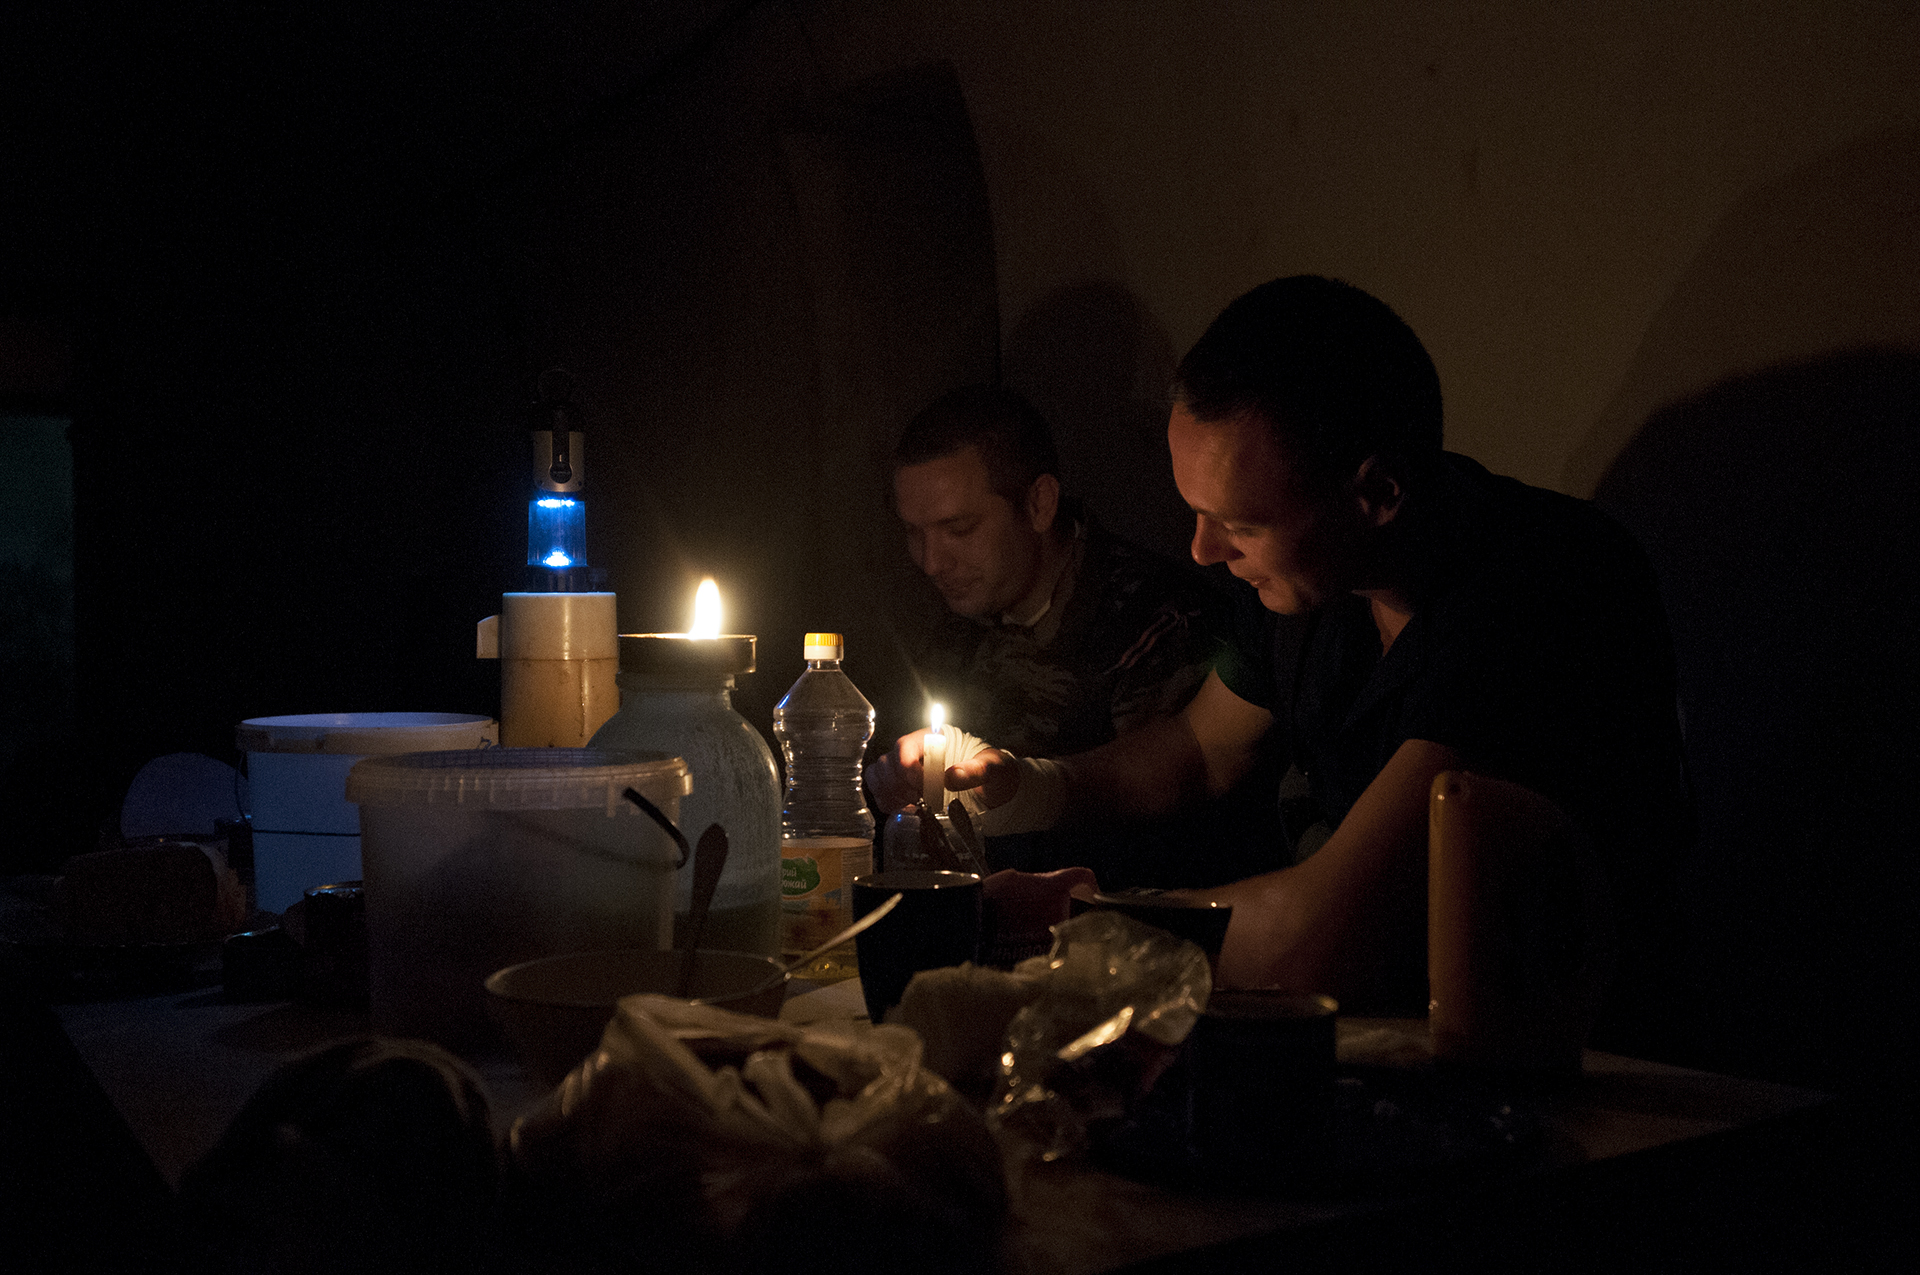 Separatists soldiers eating in their bunker